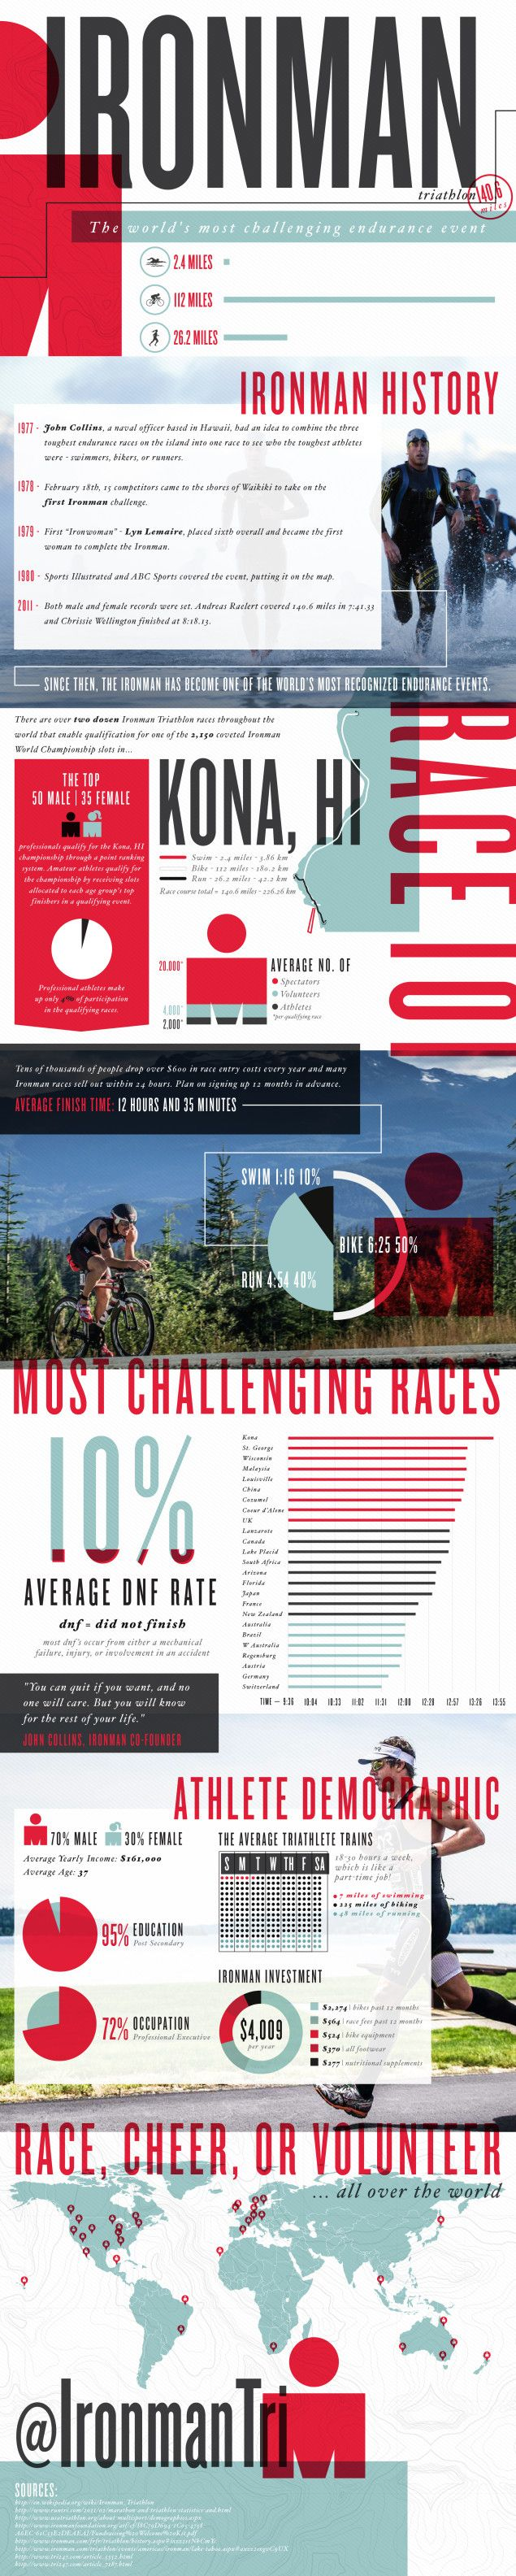 All About Ironman  An Ironman Triathlon Stats Infographic | Lemonly